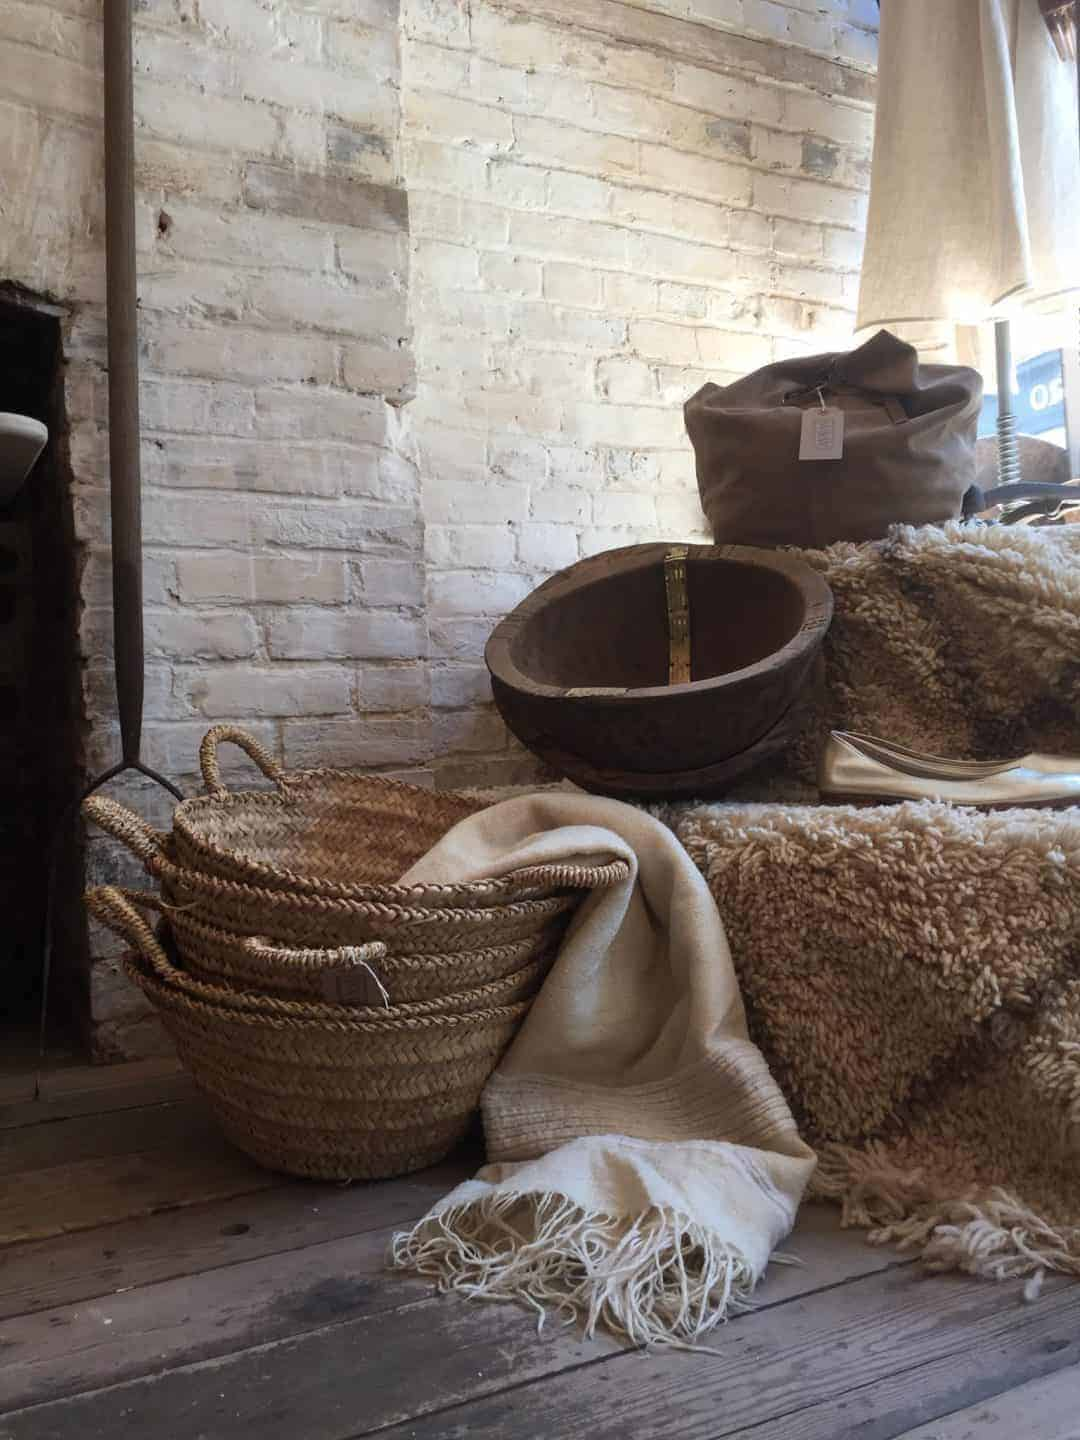 love these rustic baskets, large rustic wooden bowls and vessets at Warp and Weft Hastings